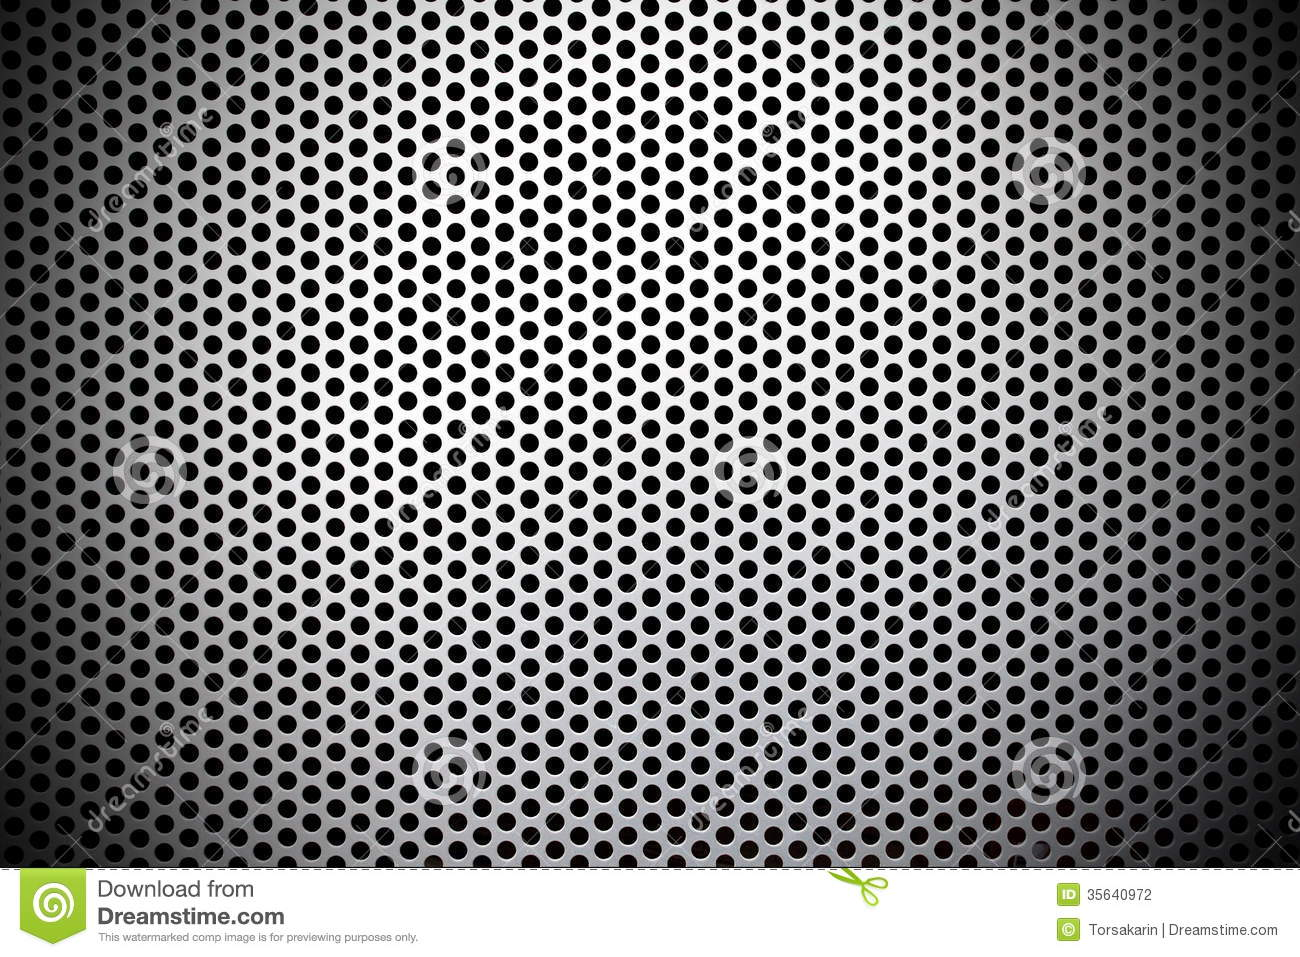 Seamless Net Texture | www.imgkid.com - The Image Kid Has It!